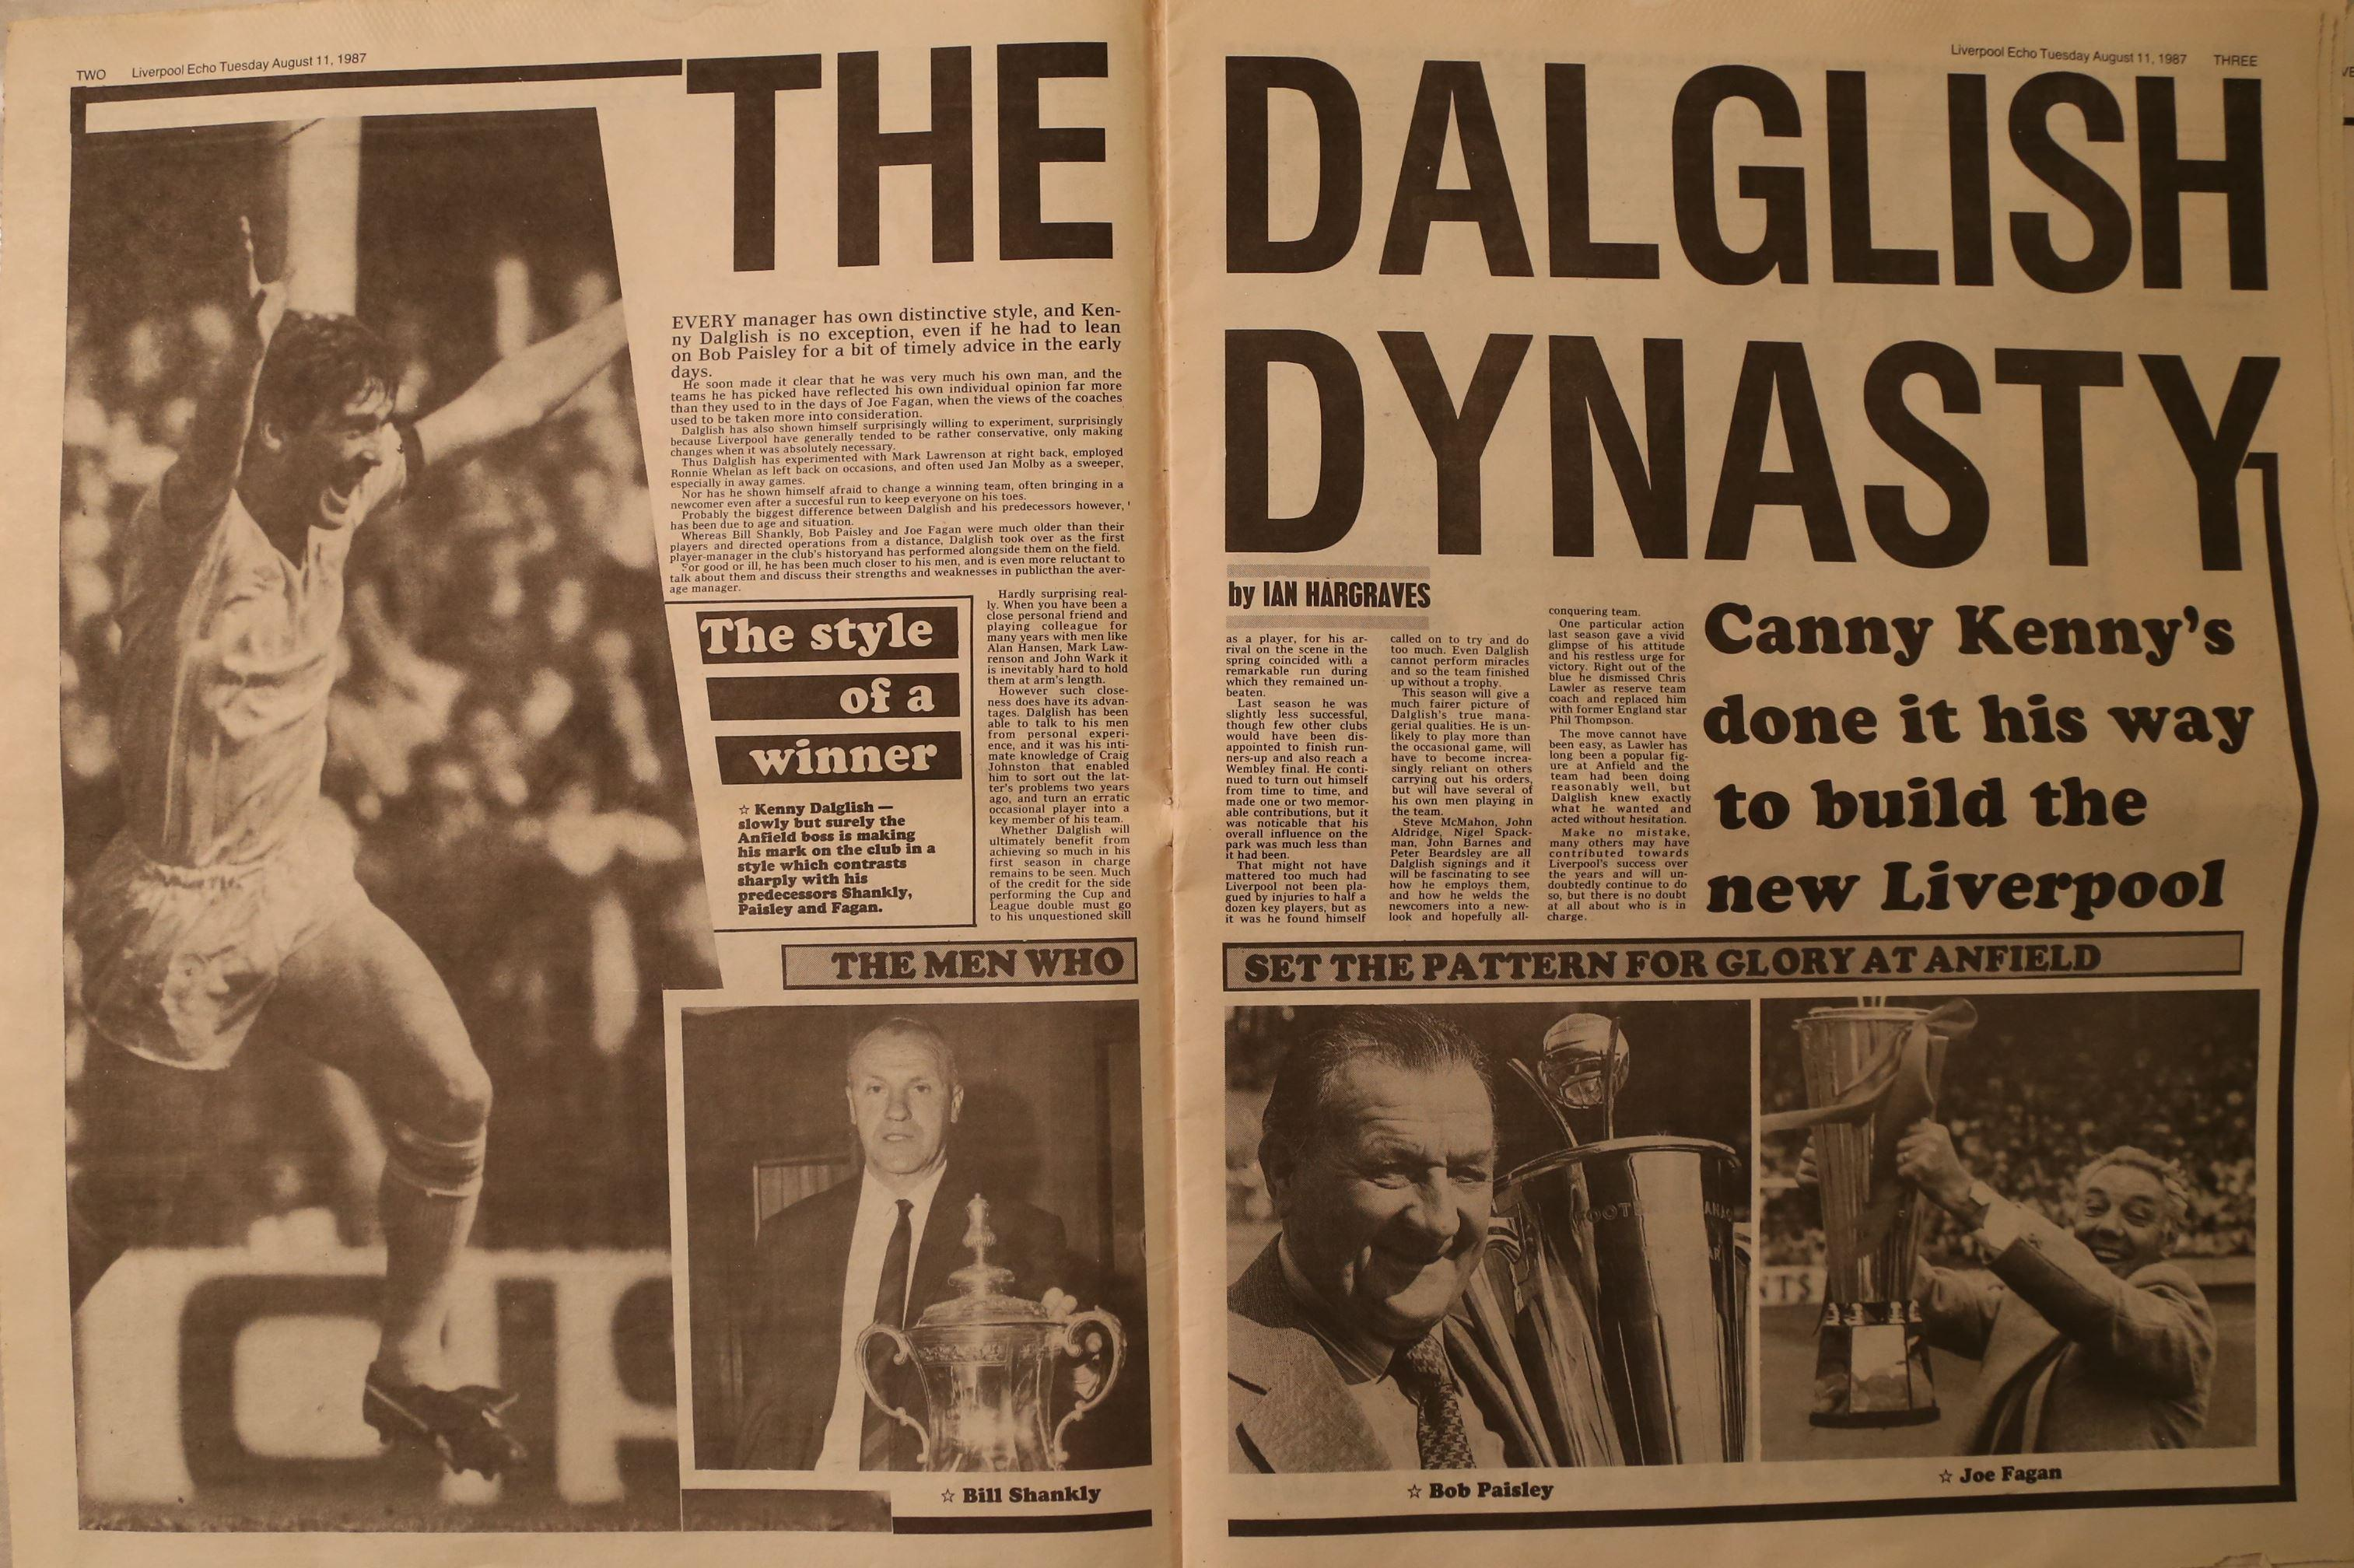 The Dalglish dynasty - 11 August 1987